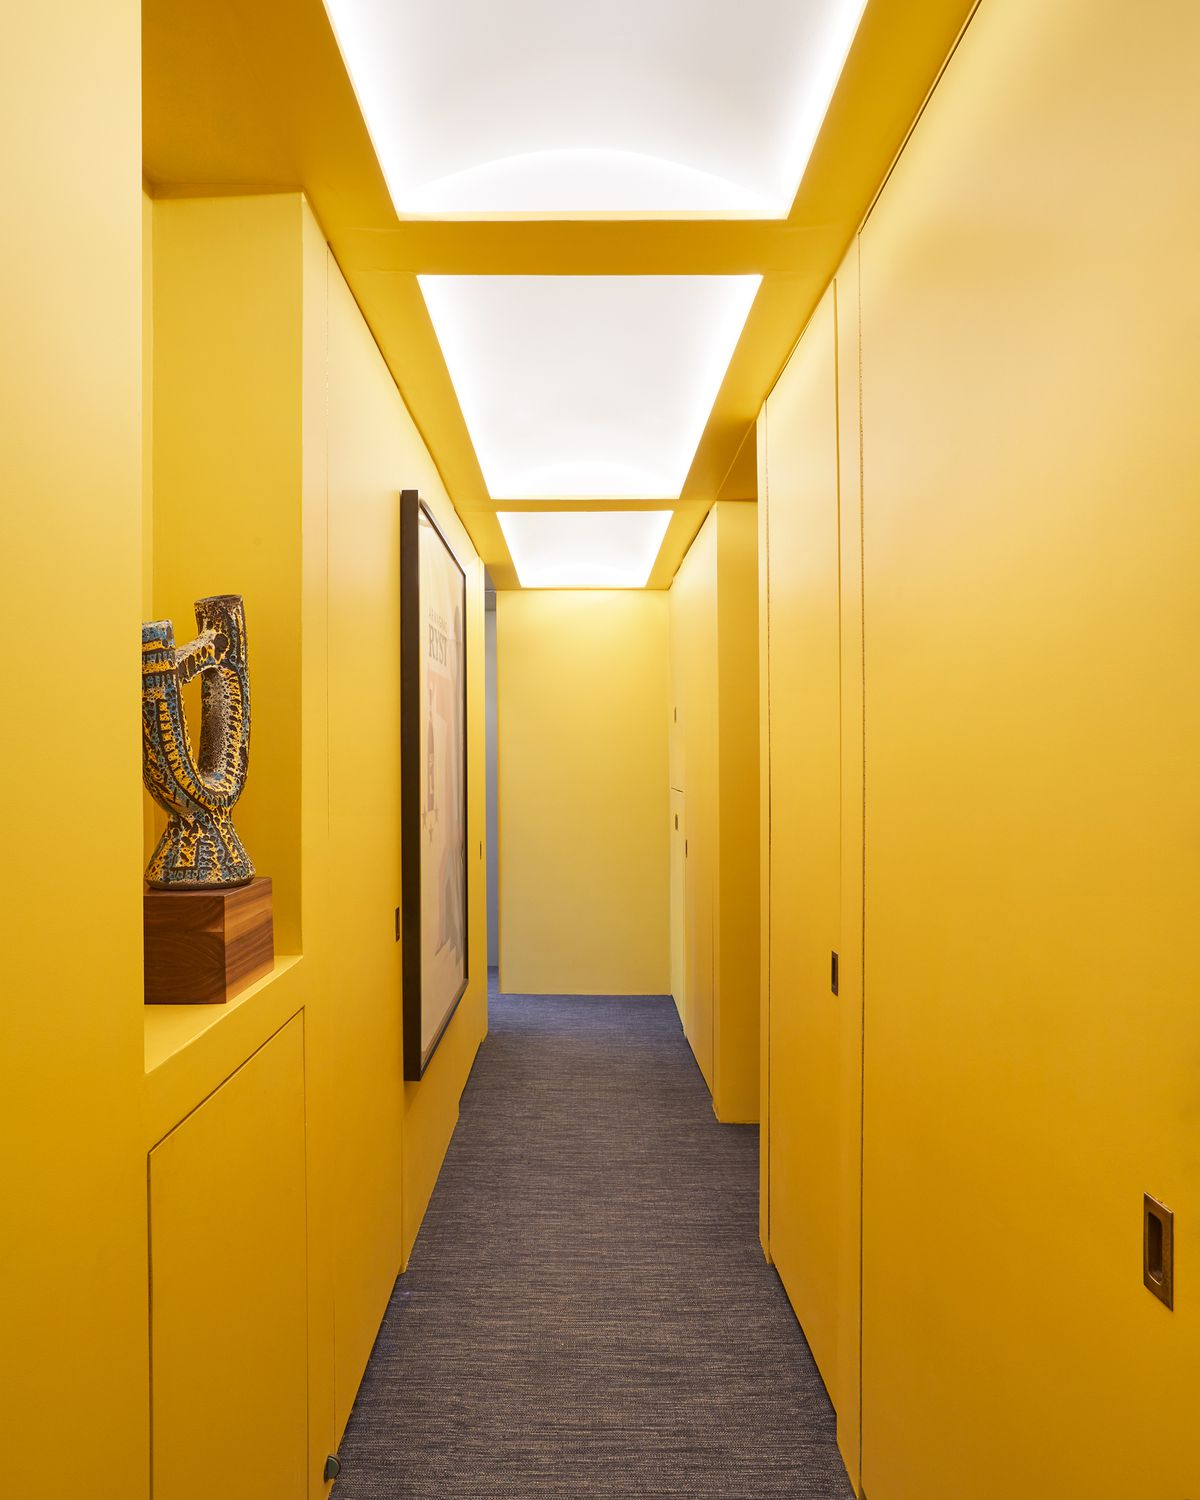 A bright yellow painted hallway with doors on both sides. There is a shelf on one side of the hallway with an ornate work of art sitting on it.